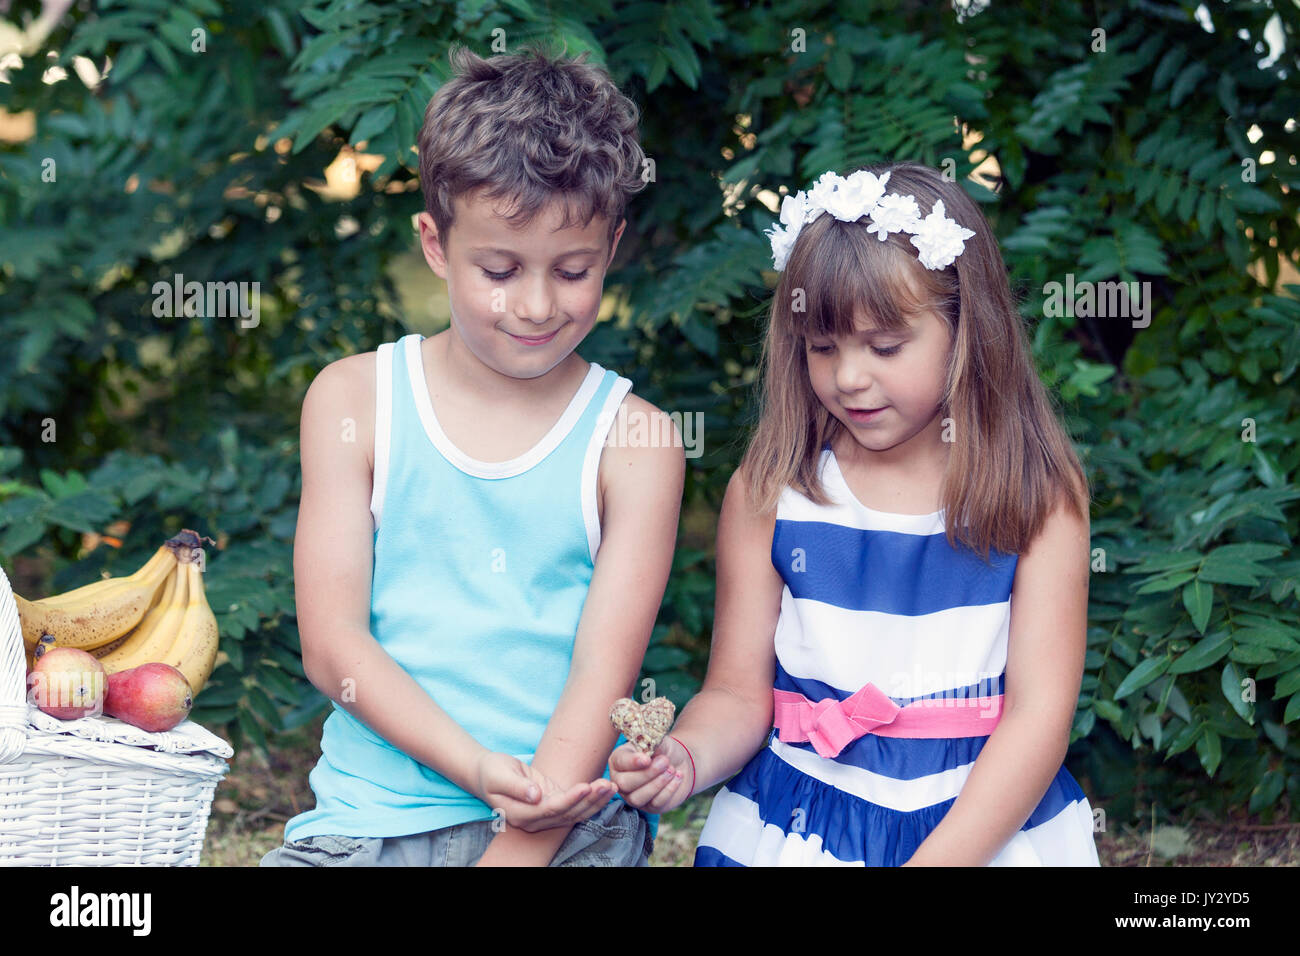 little cute boy and girl sit in the grass and play. the little girl